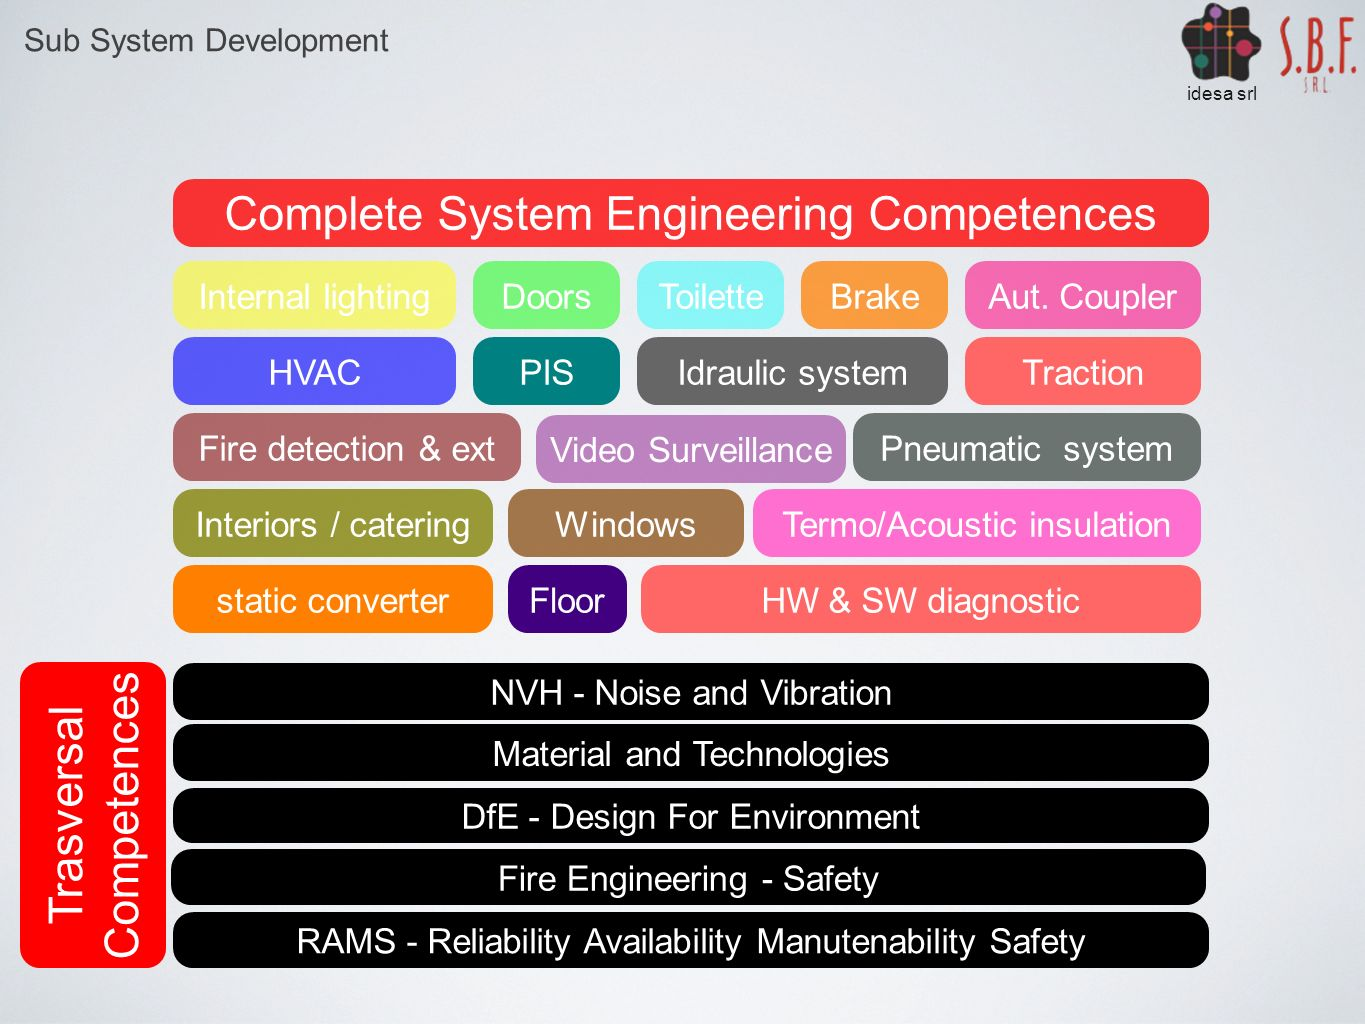 Complete System Engineering Competences